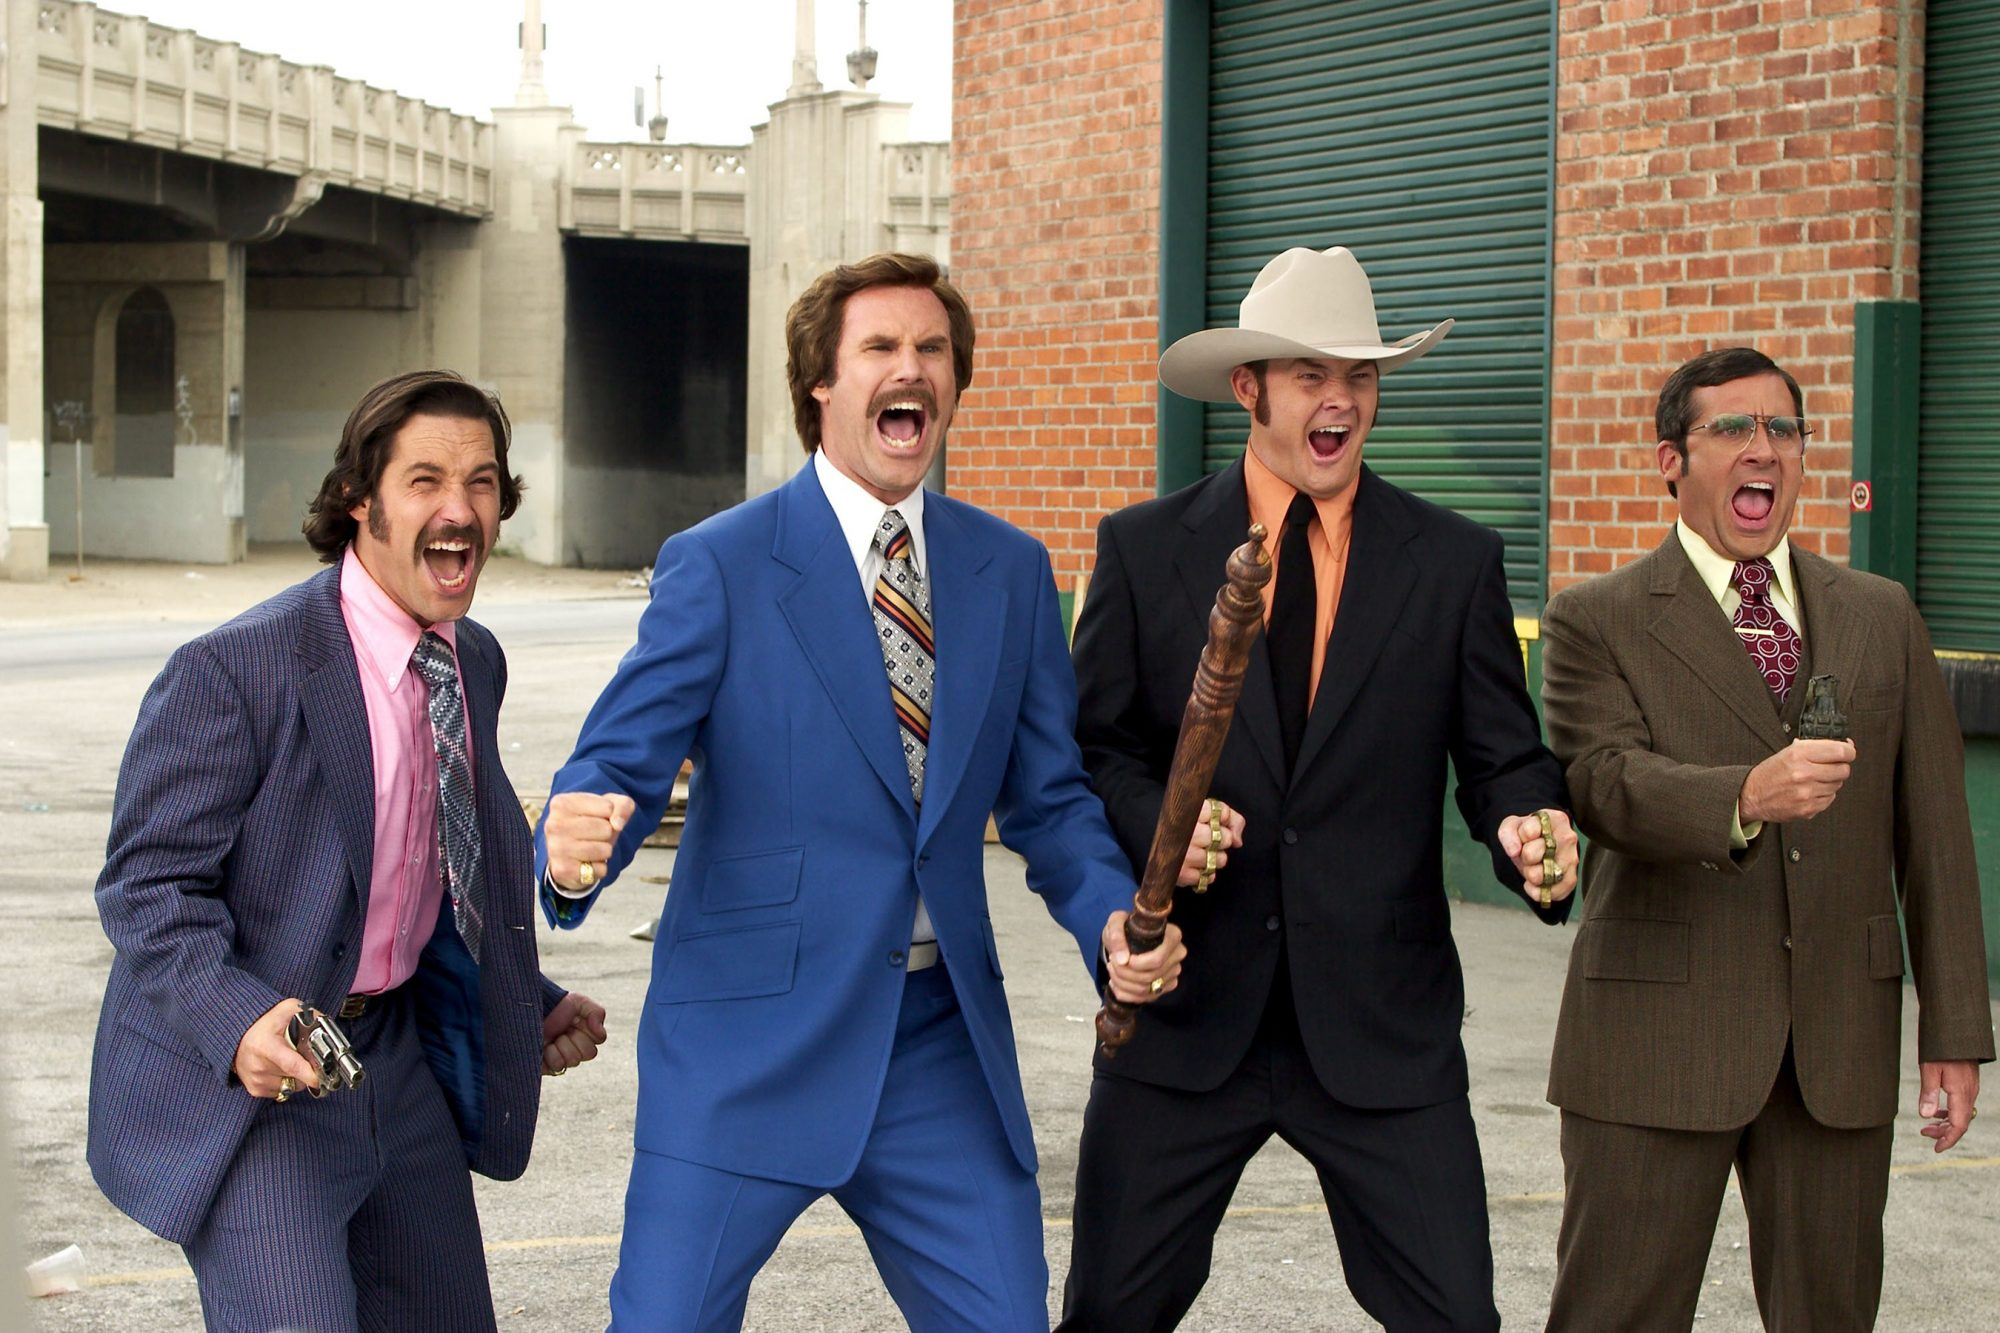 ANCHORMAN: THE LEGEND OF RON BURGUNDY, Paul Rudd, Will Ferrell, David Koechner, Steve Carell, 2004,